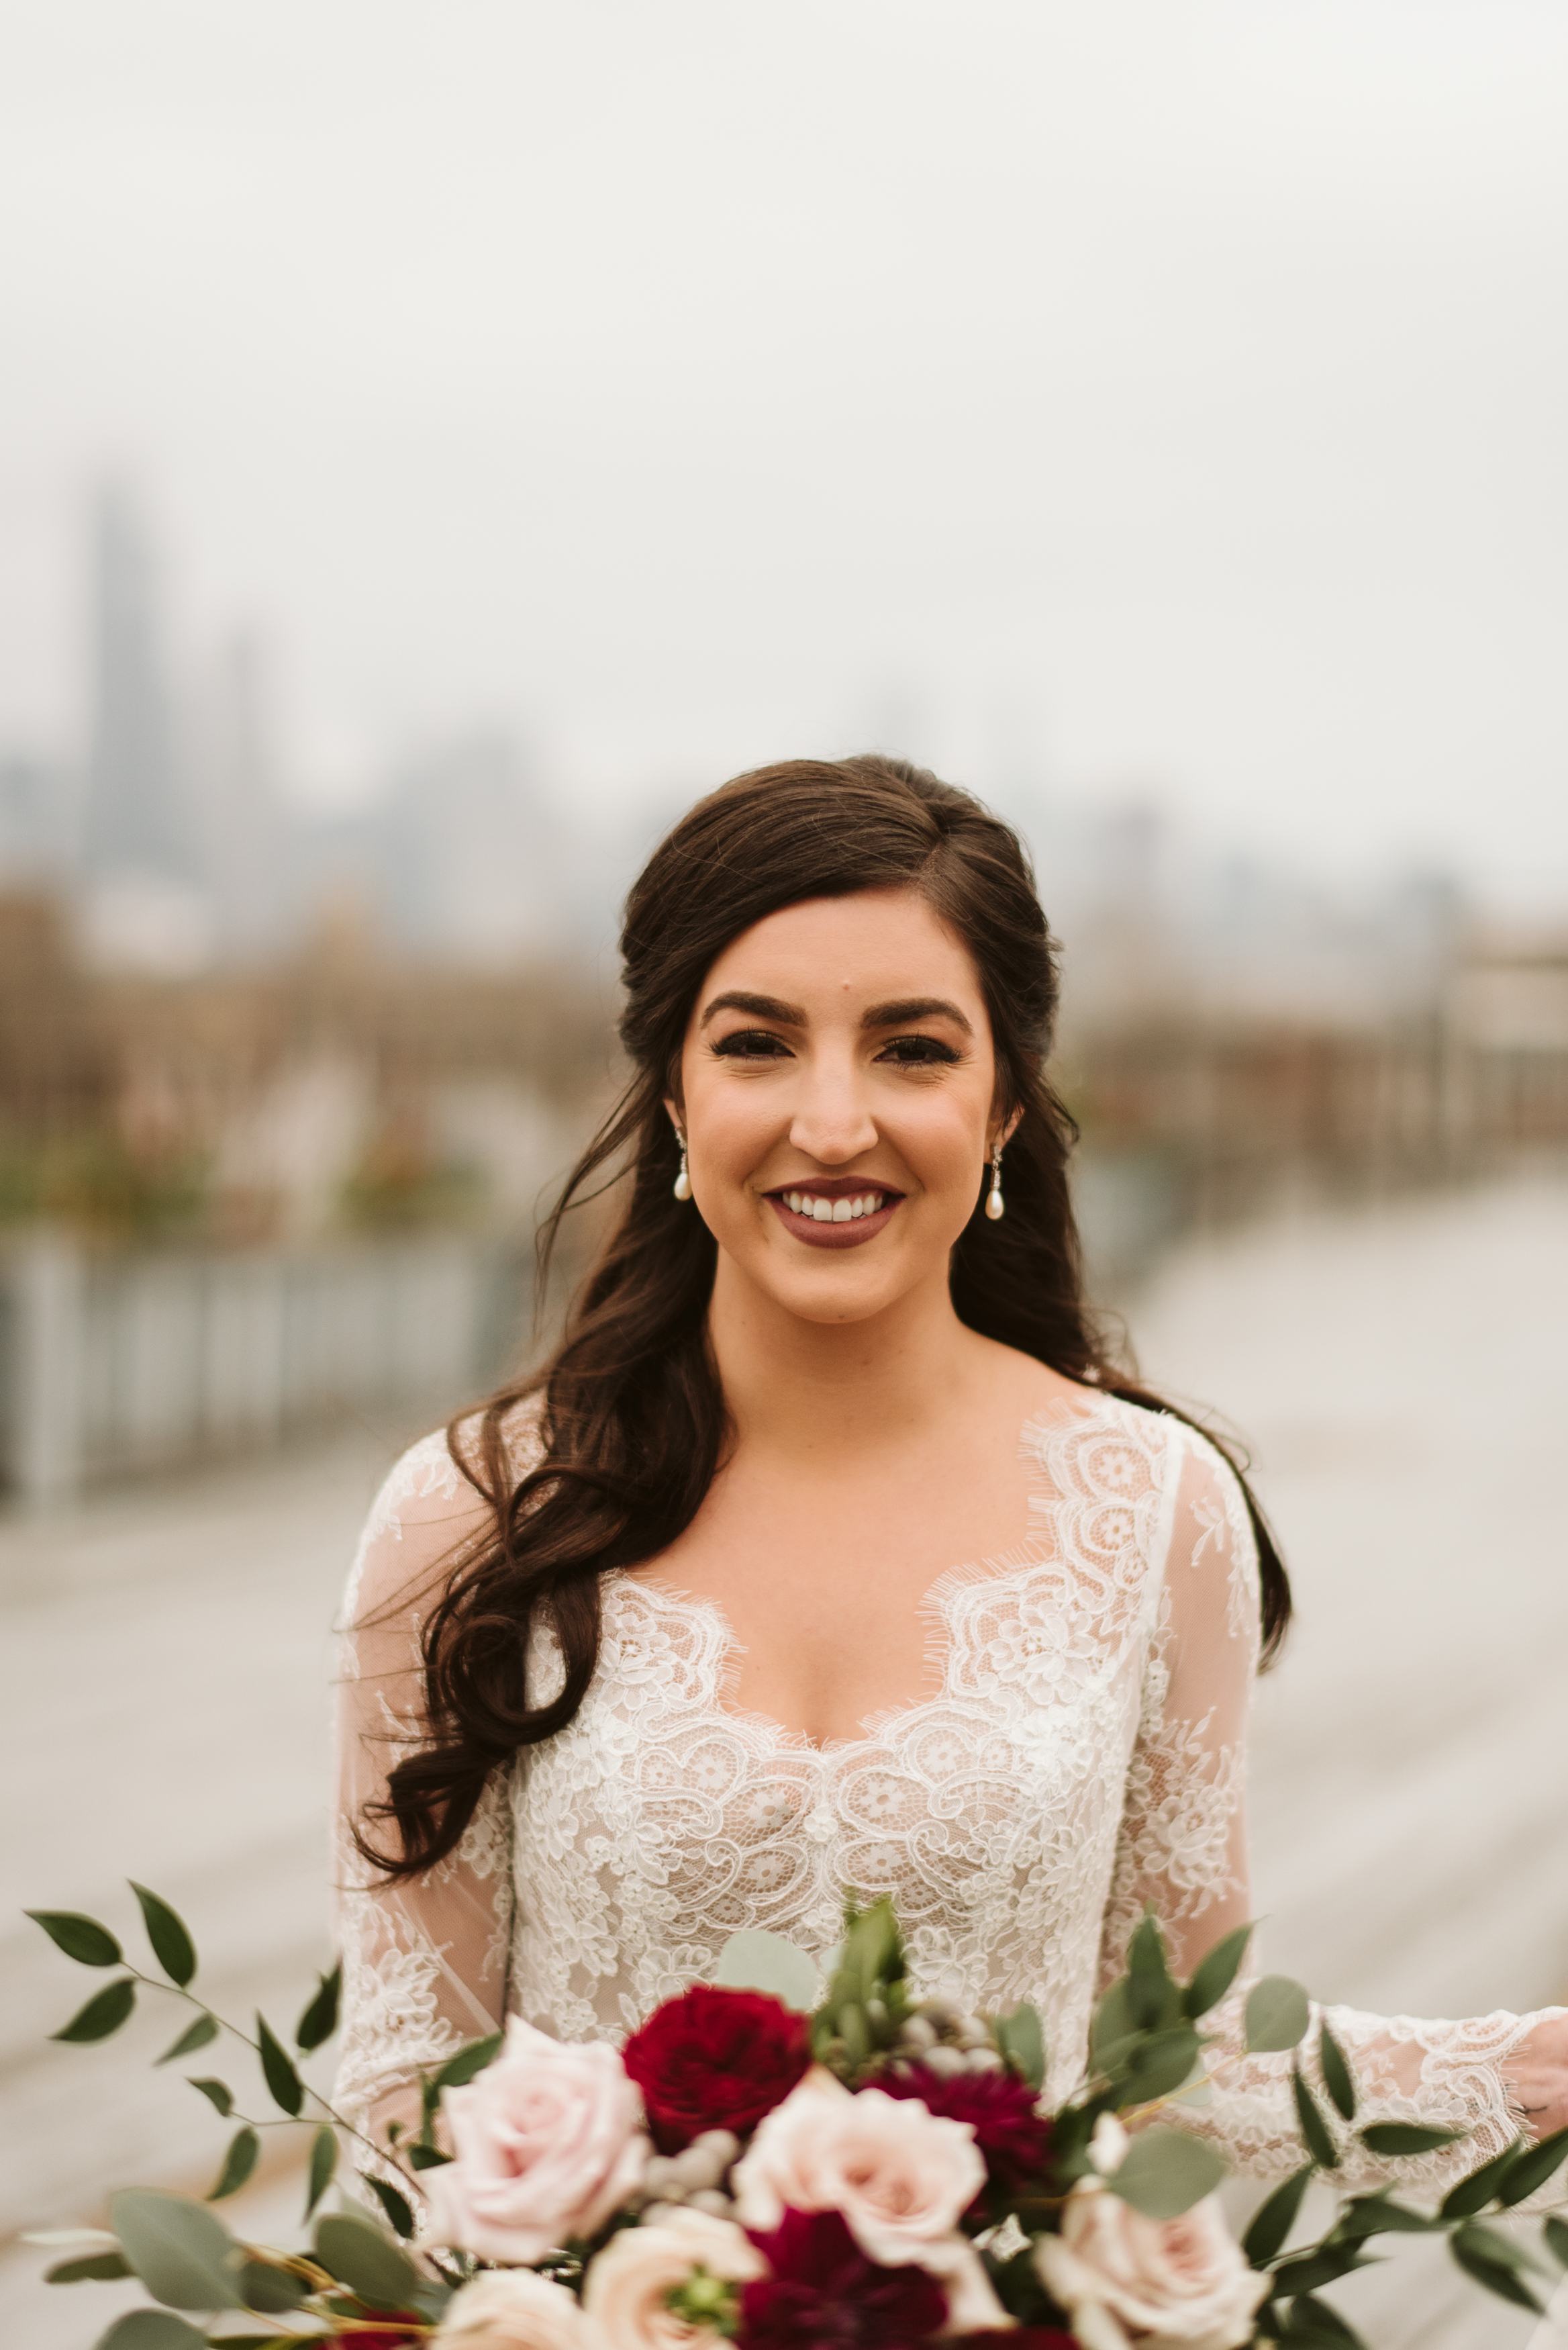 lacuna-lofts-chicago-winter-wedding-morgan-tom-27